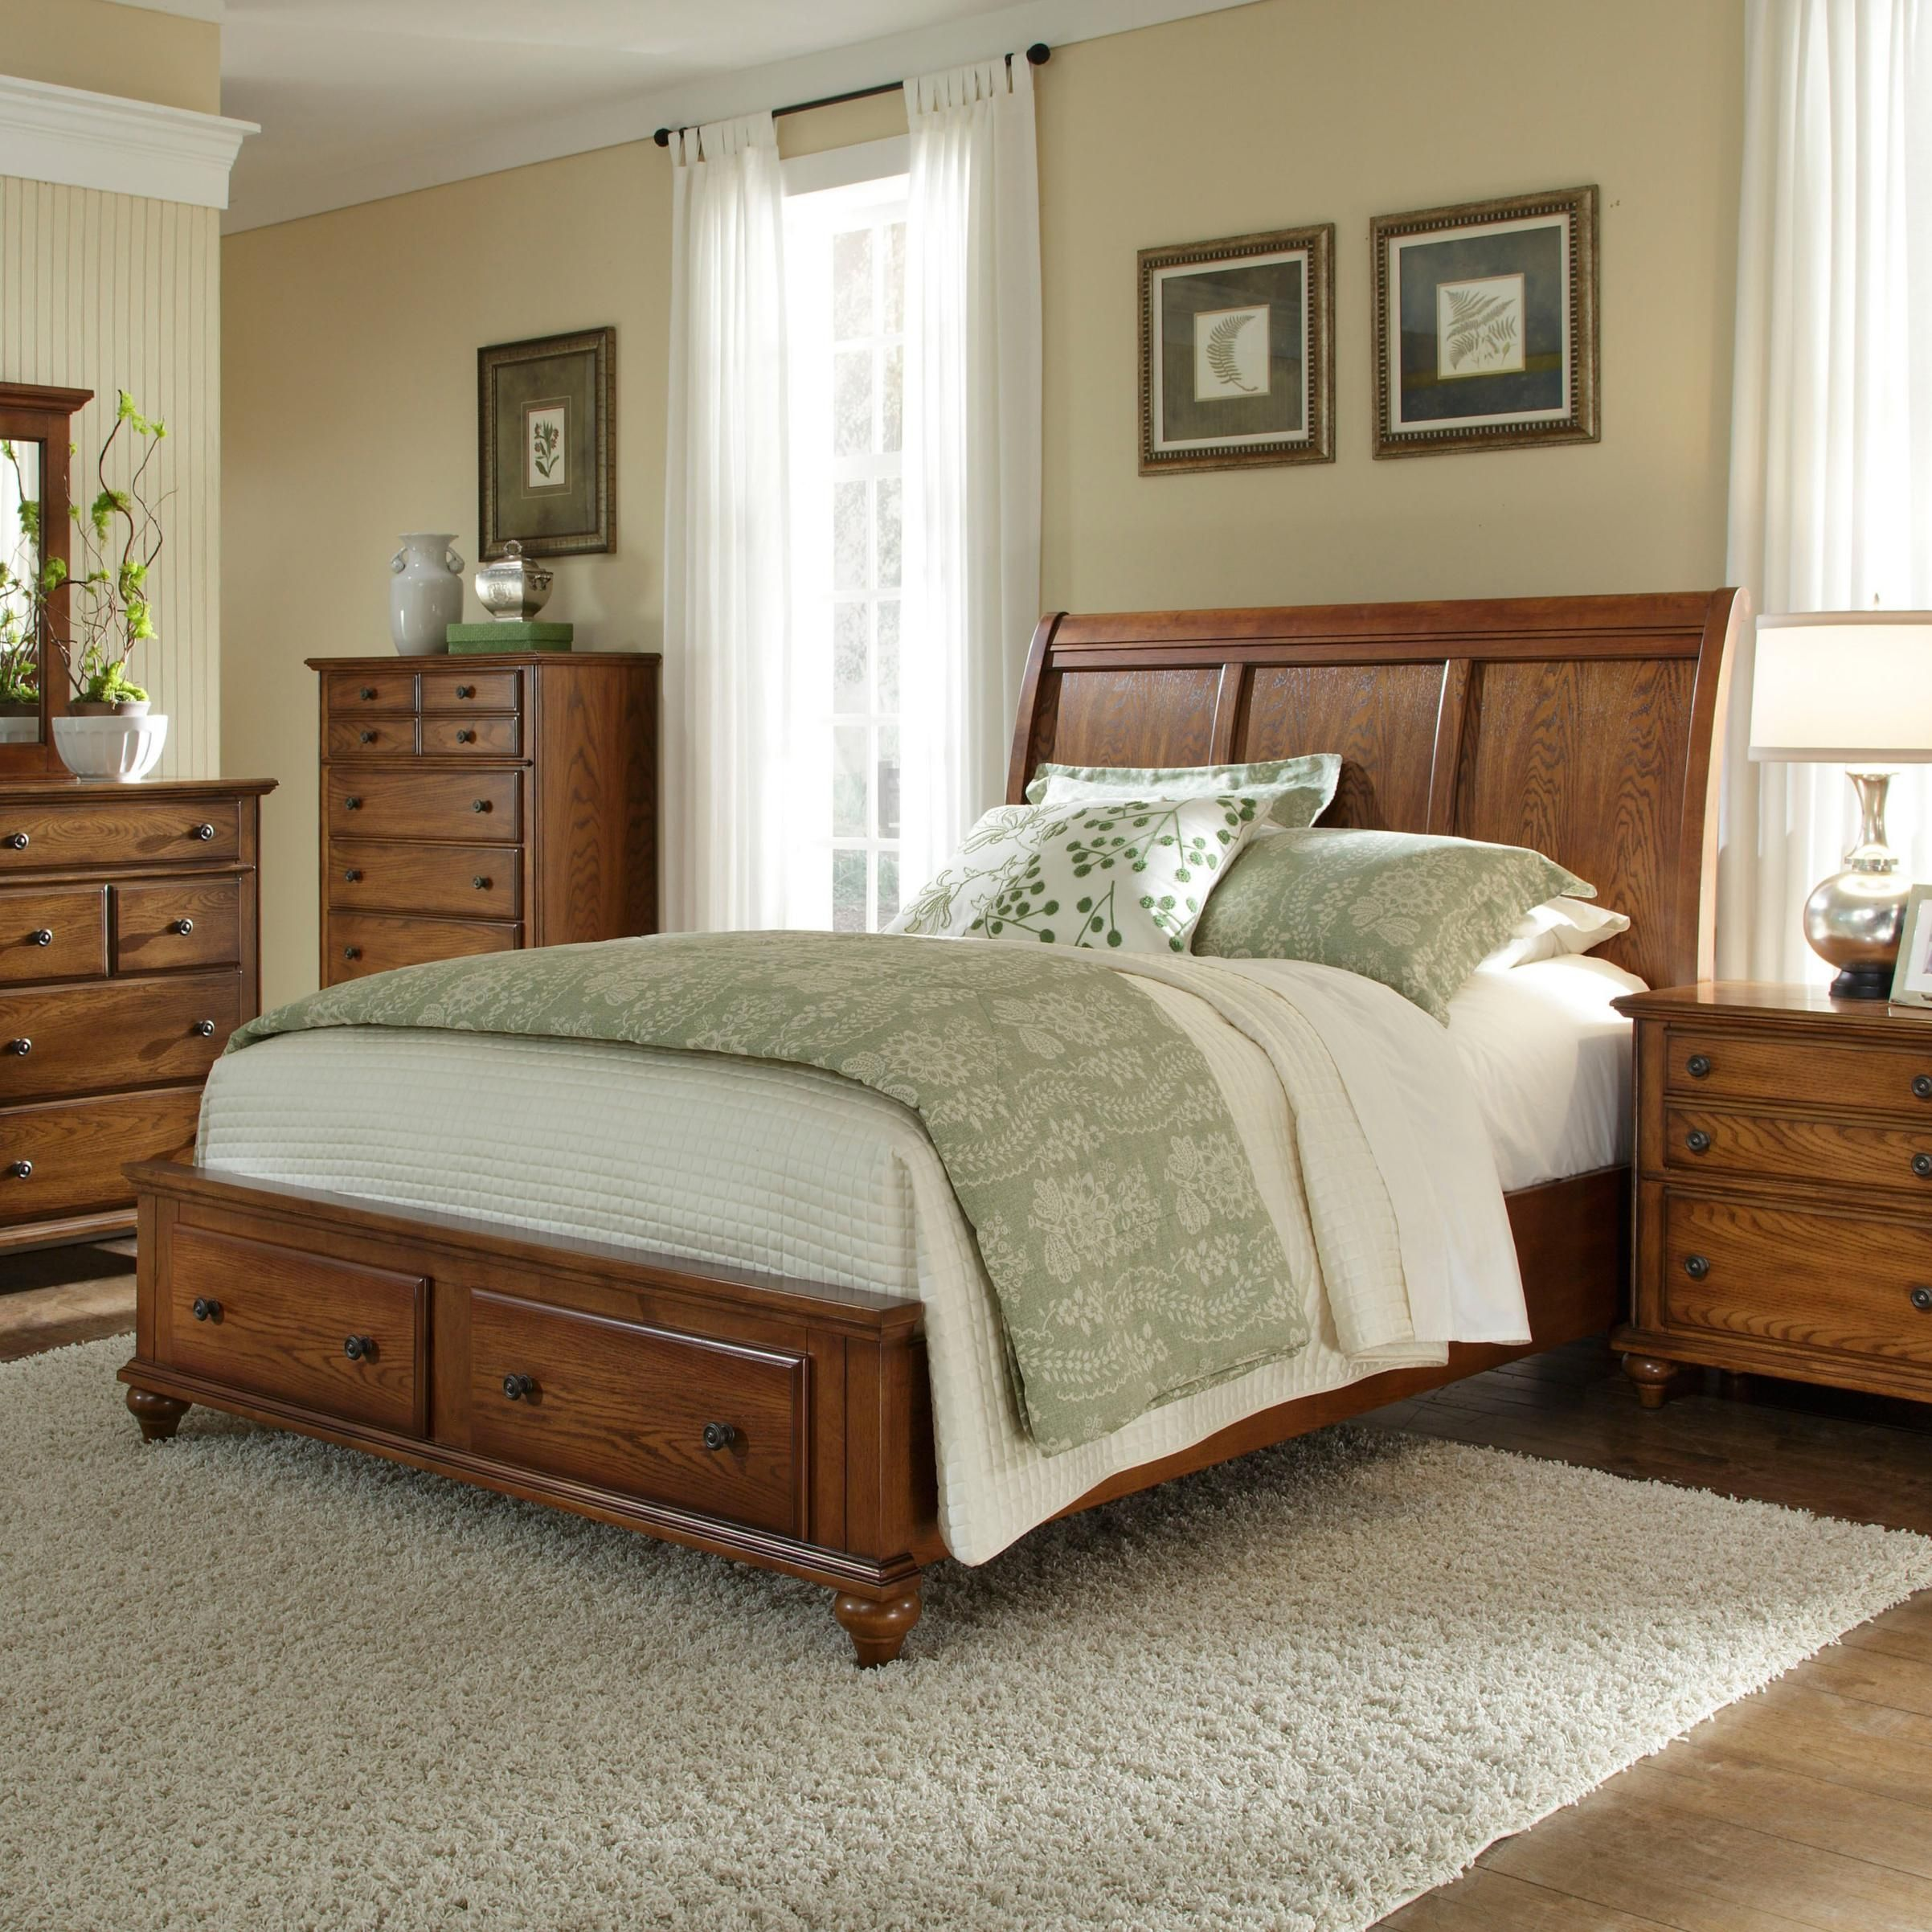 How To Place Broyhill Bedroom Furniture